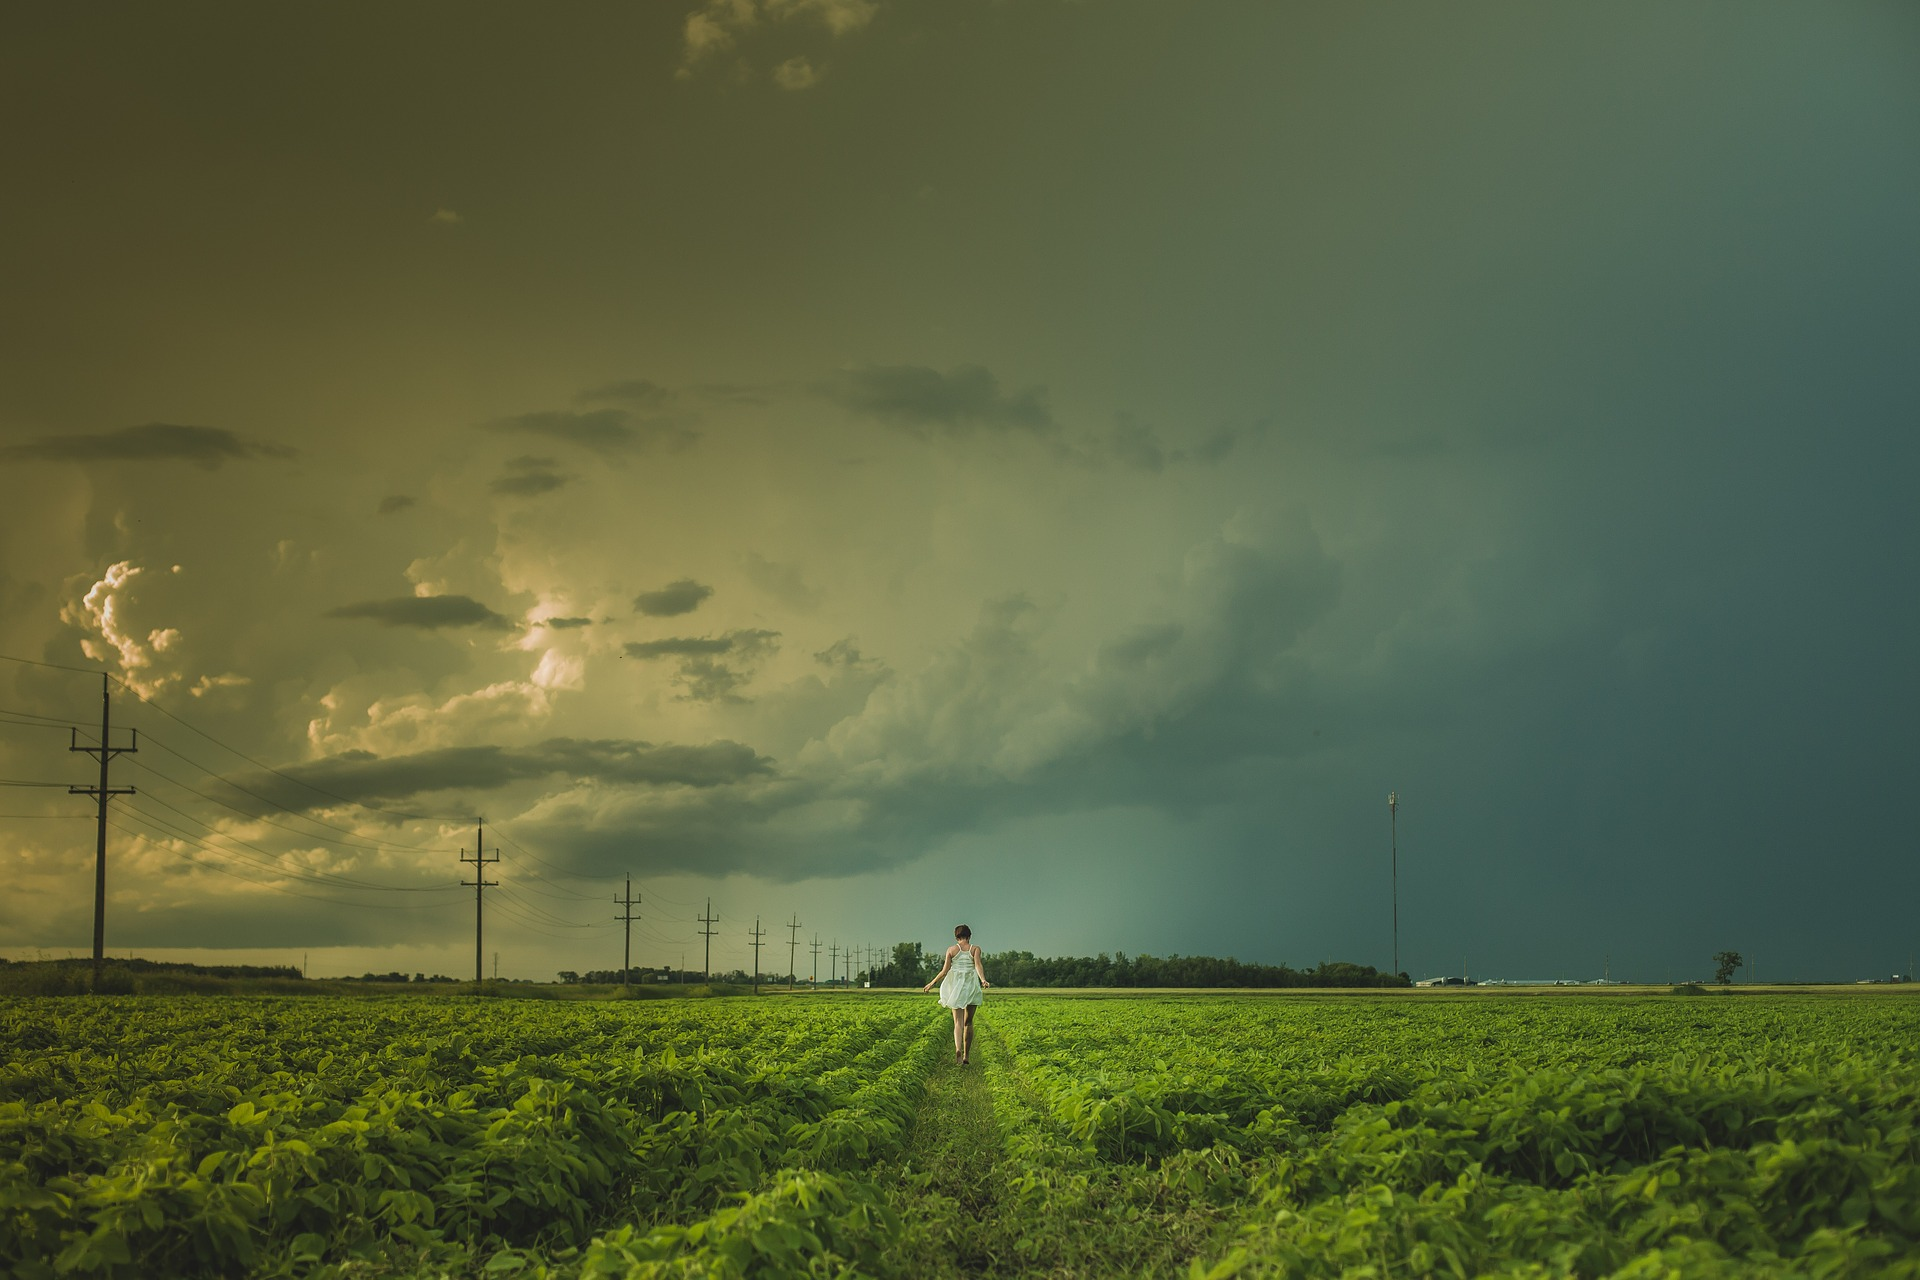 woman alone in field storm clouds